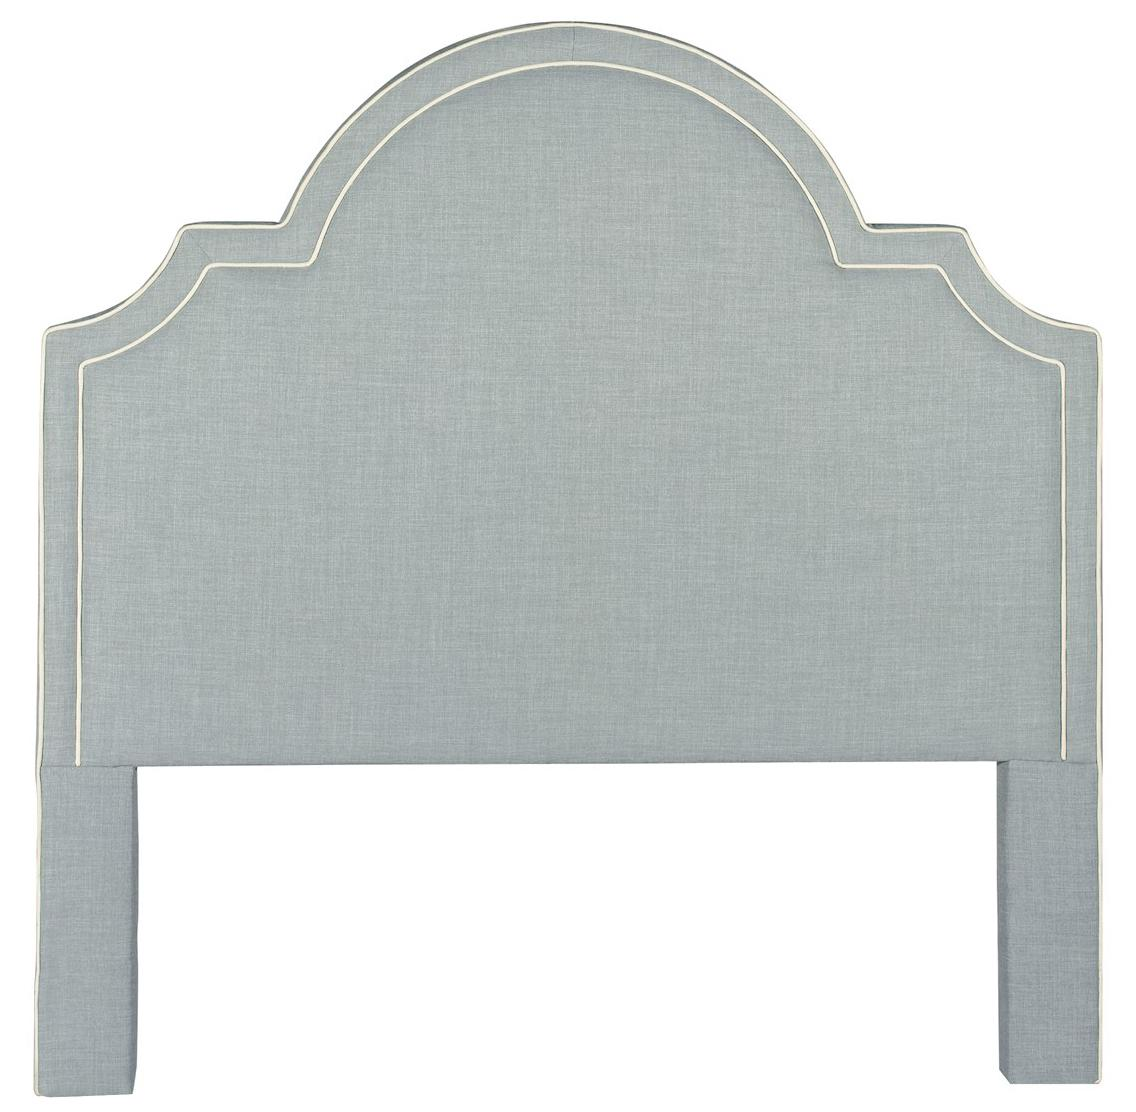 Headboard Shown May Not Represent Exact Features Indicated